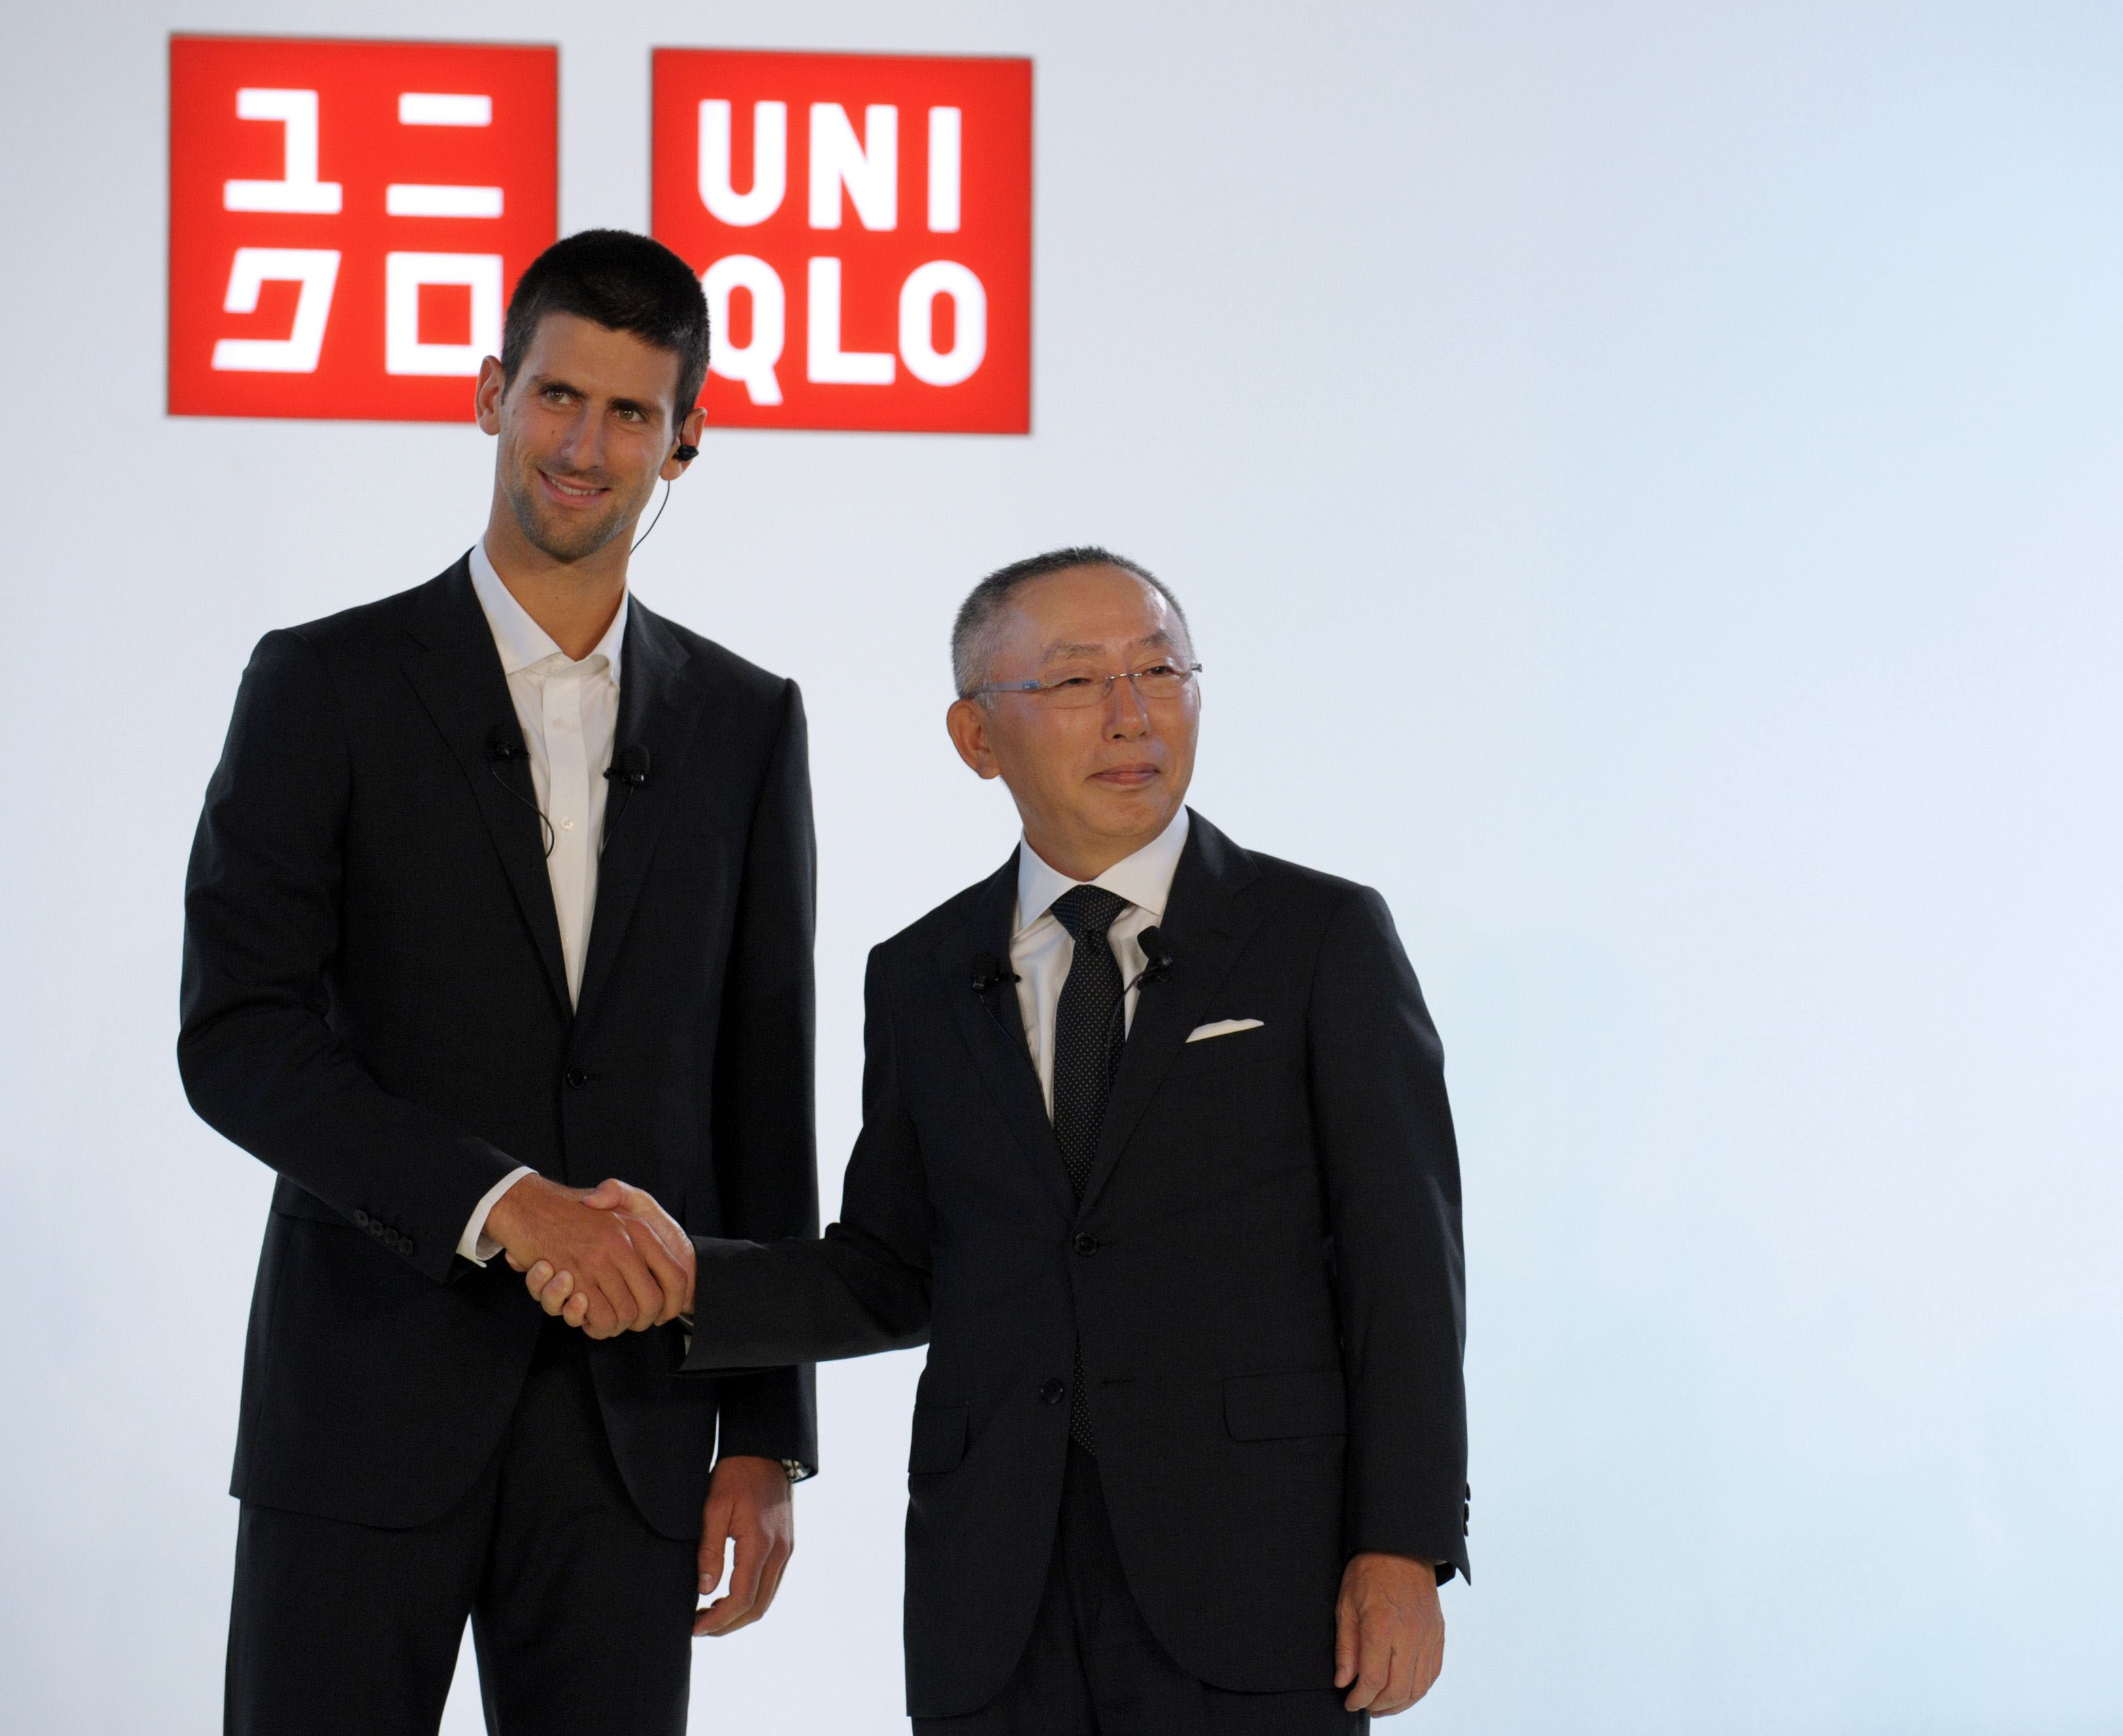 Grand slam: Fast Retailing group and Uniqlo Co. CEO Tadashi Yanai faces reporters Wednesday in Paris with Serbian tennis champion Novak Djokovic, the new face for the clothing brand. | AFP-JIJI